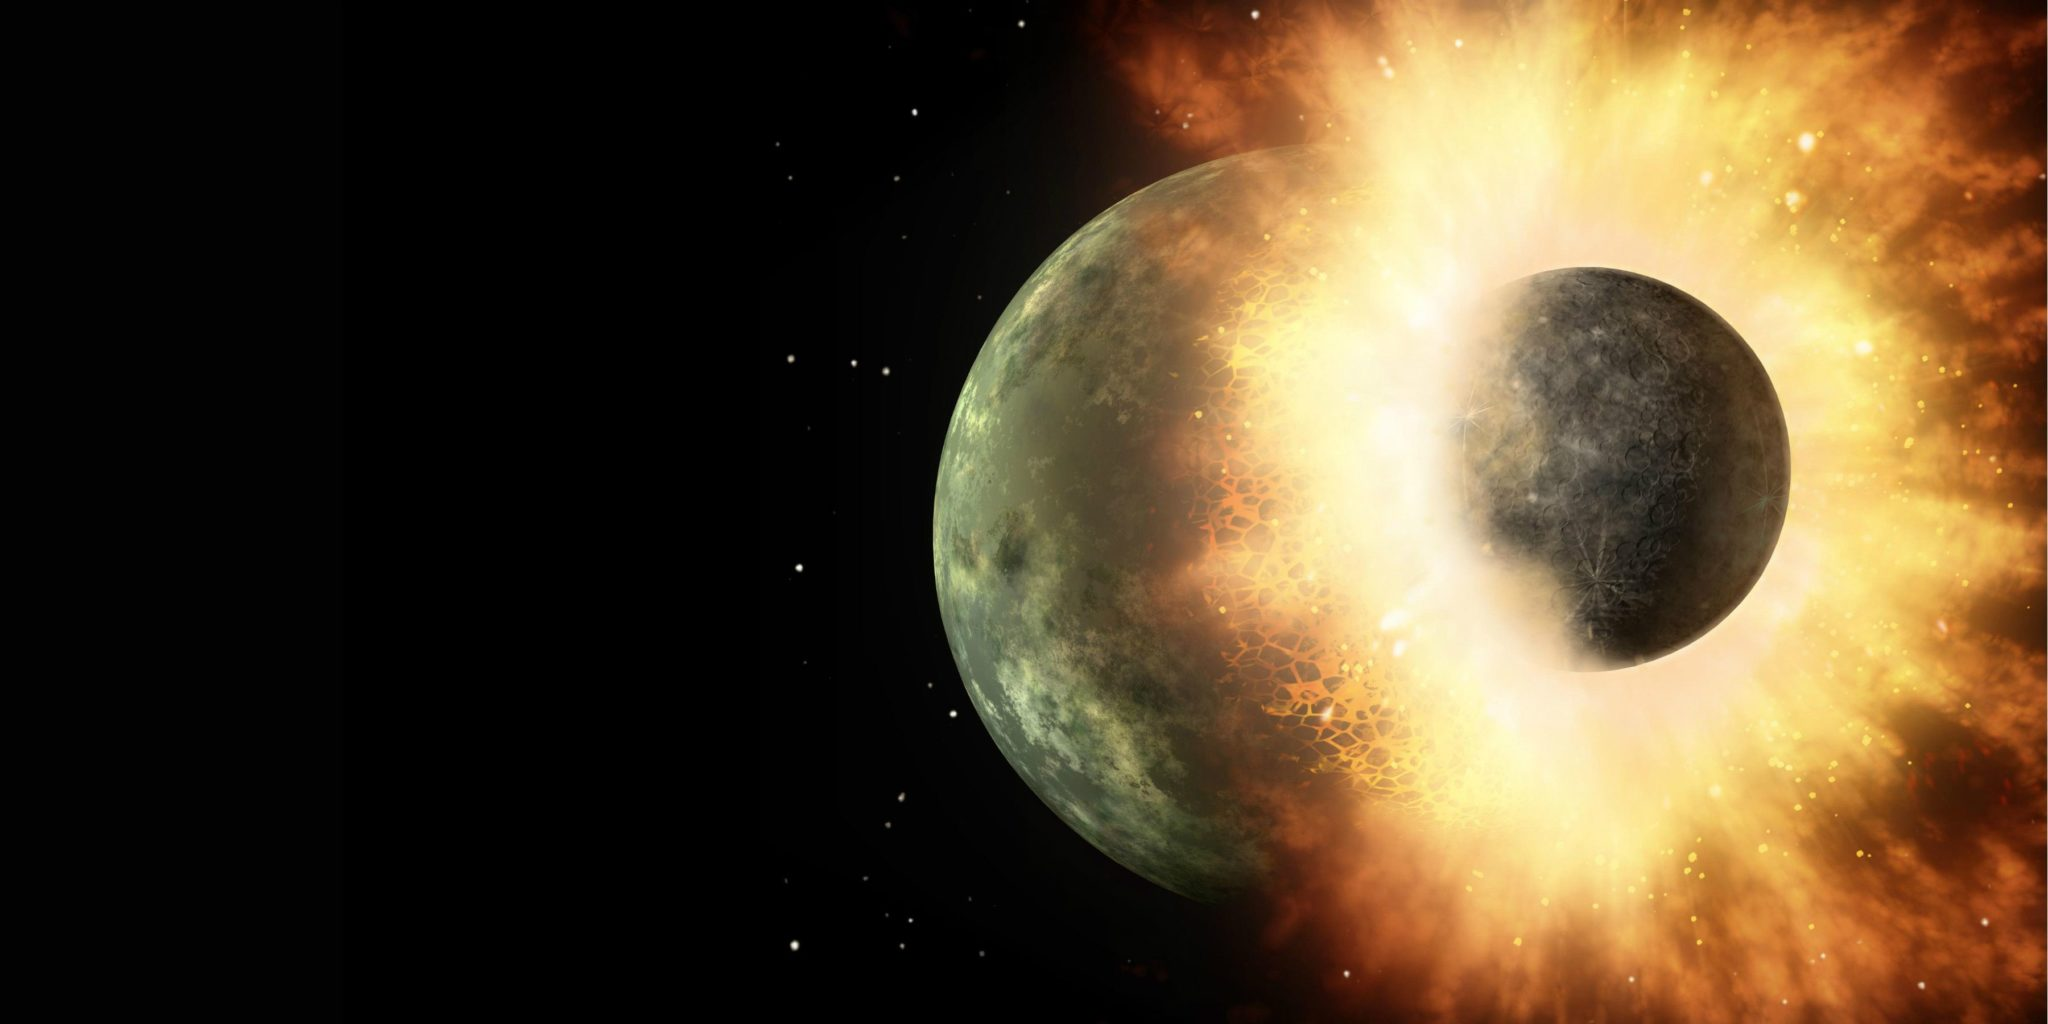 The Giant Impact Hypothesis - Was The Moon Formed From The Earth's Magma